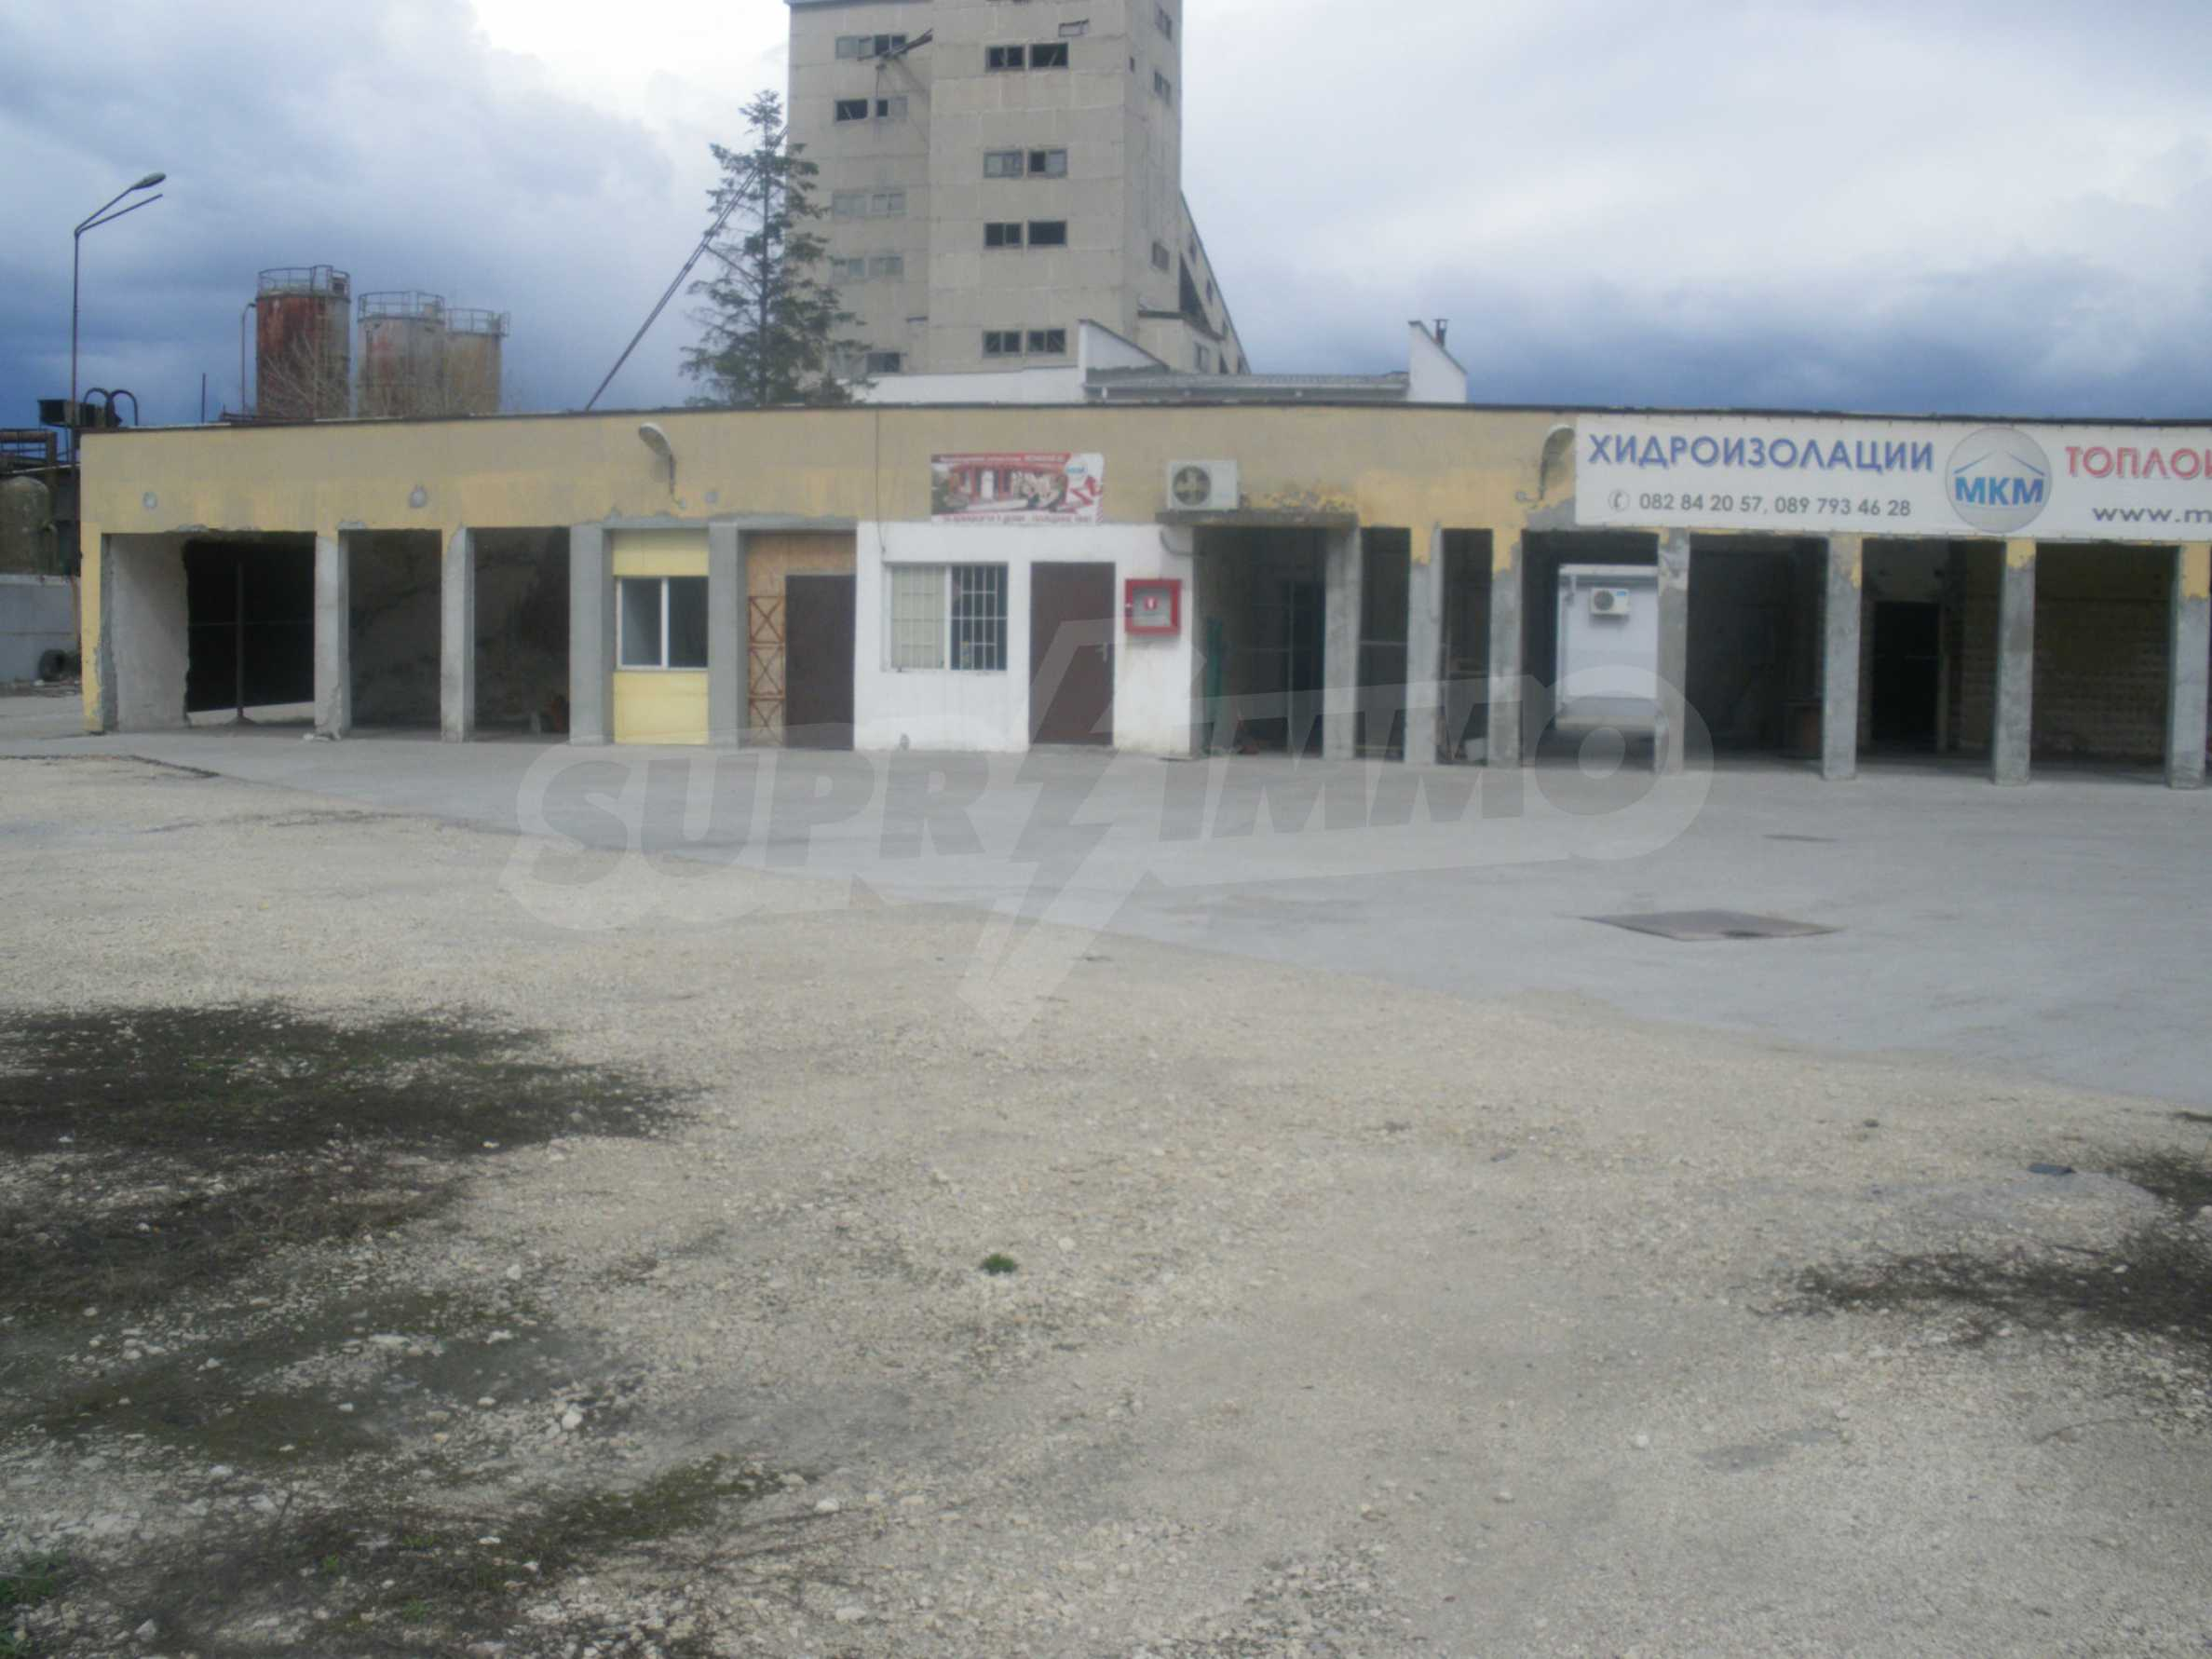 Storehouses in the industrial part of Ruse